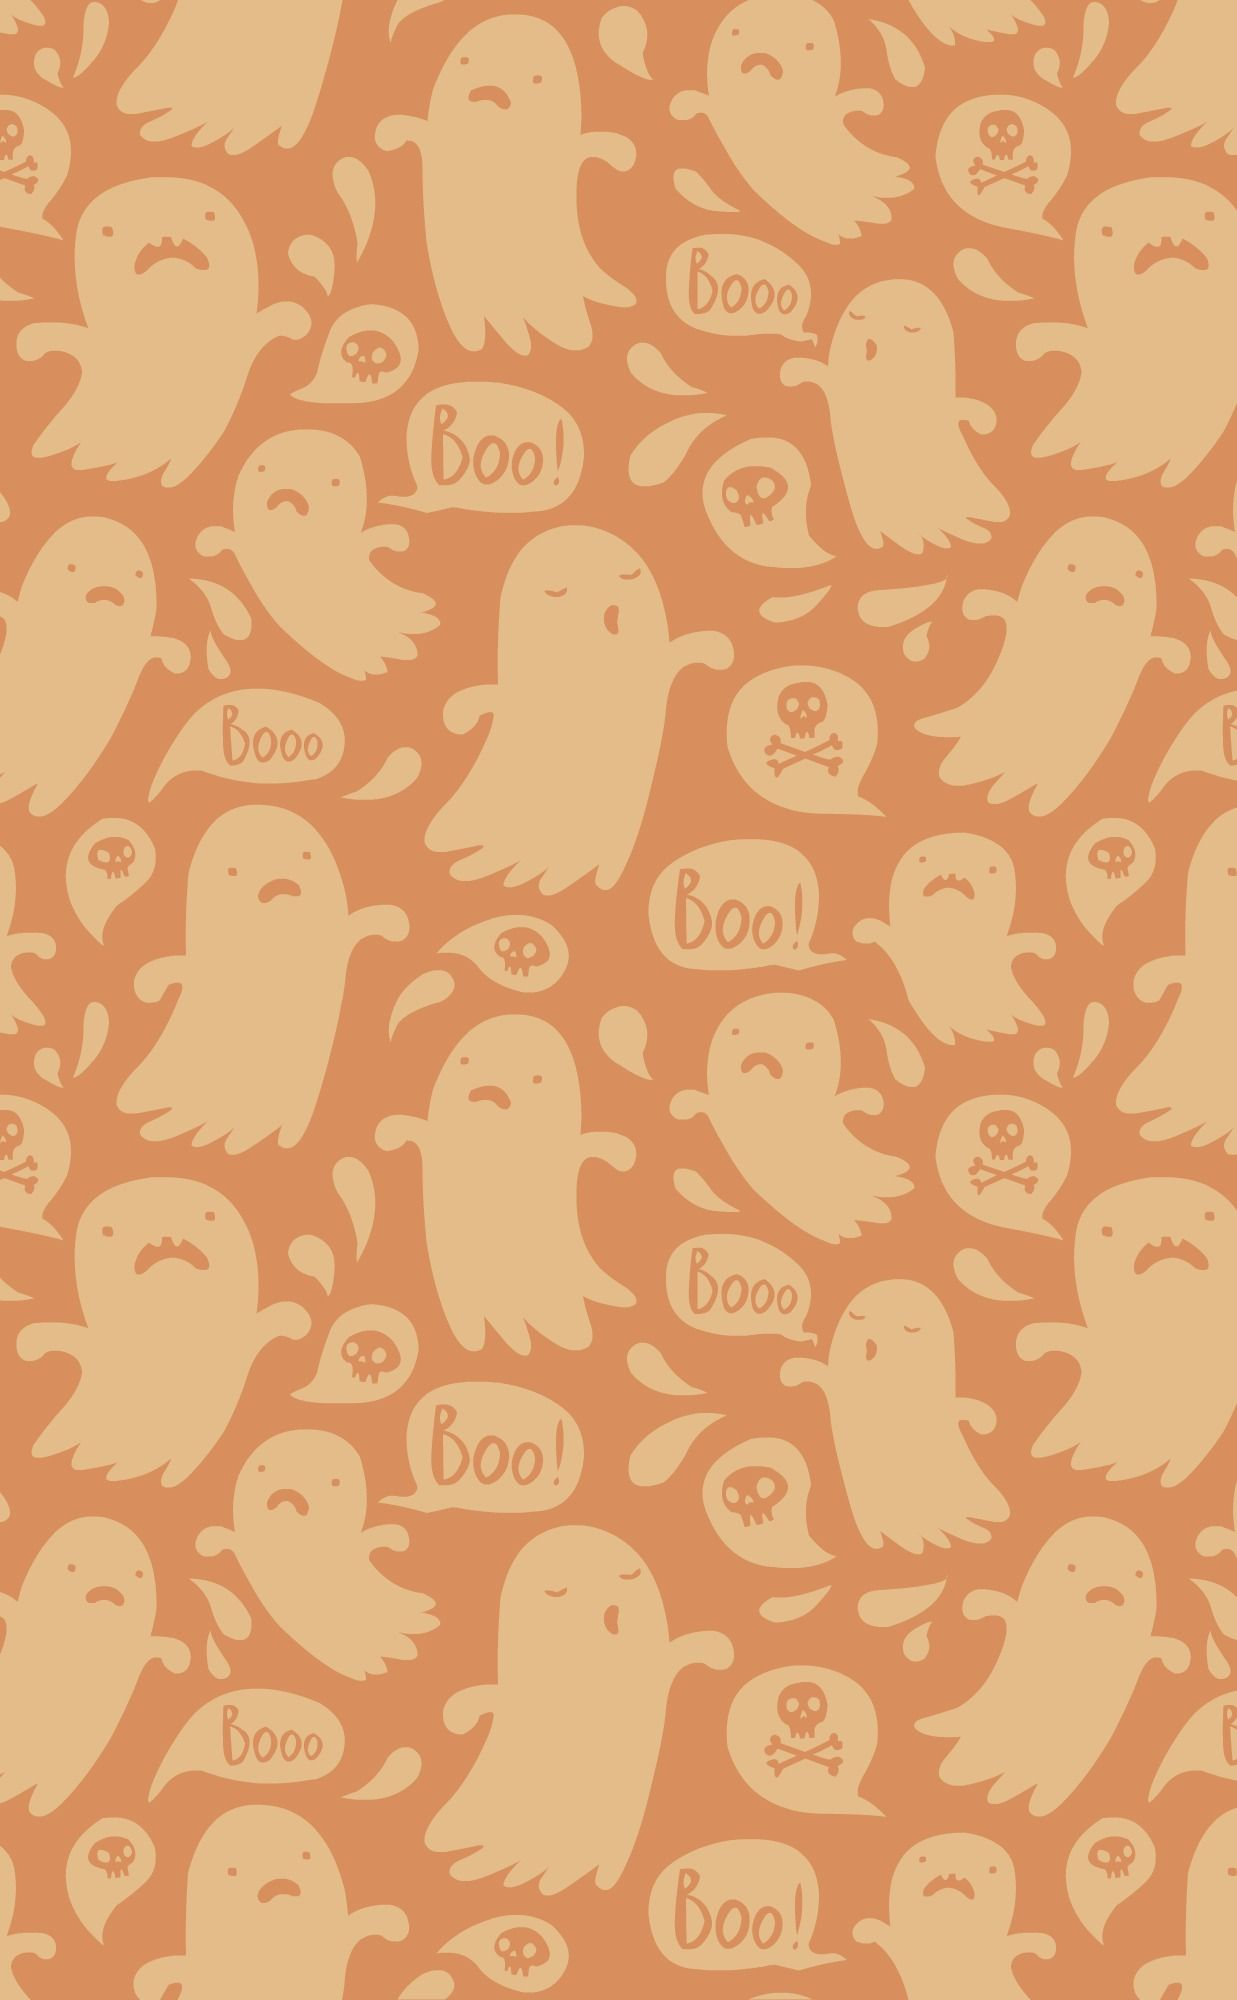 Top Wallpaper Halloween Smartphone - 58a608fd785923a1538688719c761ed1  Collection_351354.jpg